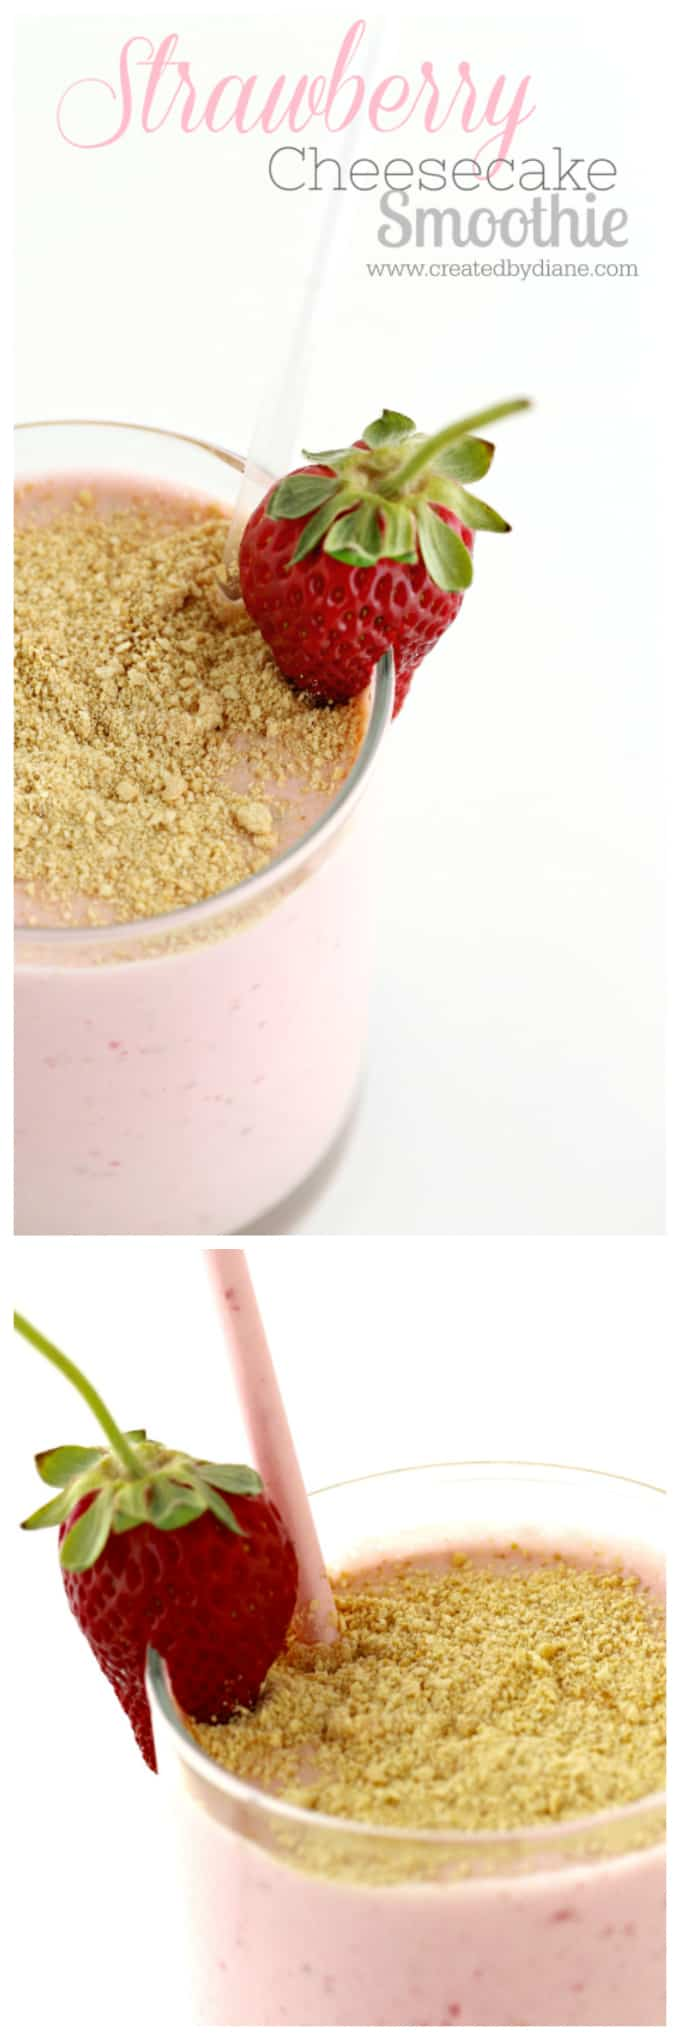 strawberry Smoothie #cheesecake #smoothie #strawberry www.createdbydiane.com